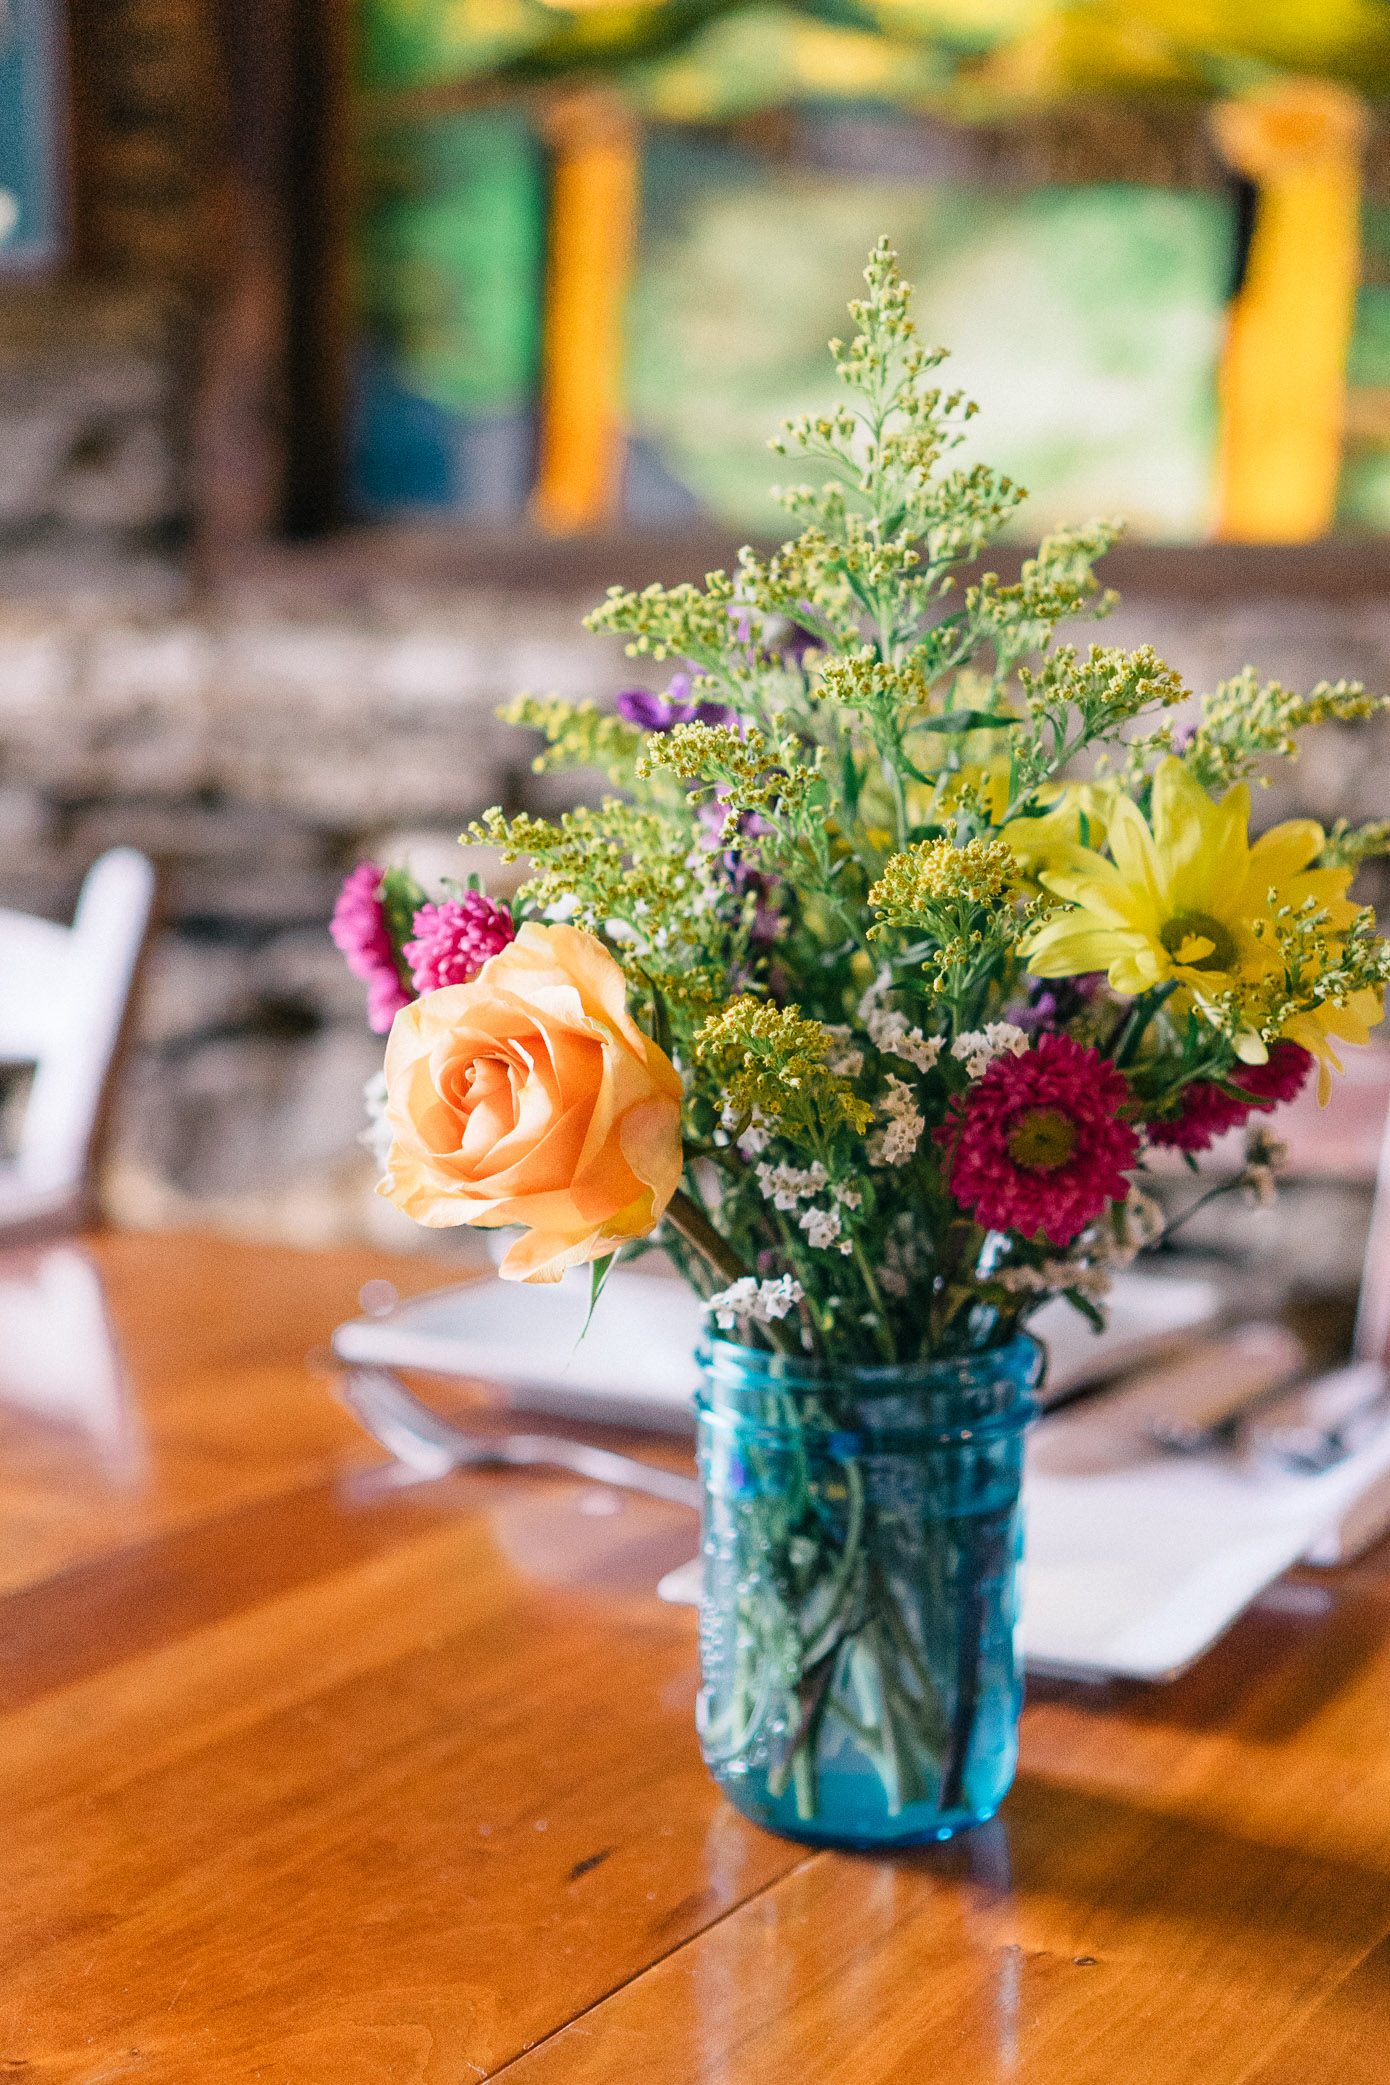 Cataloochee Ranch Review | Where to Eat in Maggie Valley, NC | Louella Reese Life & Style Blog